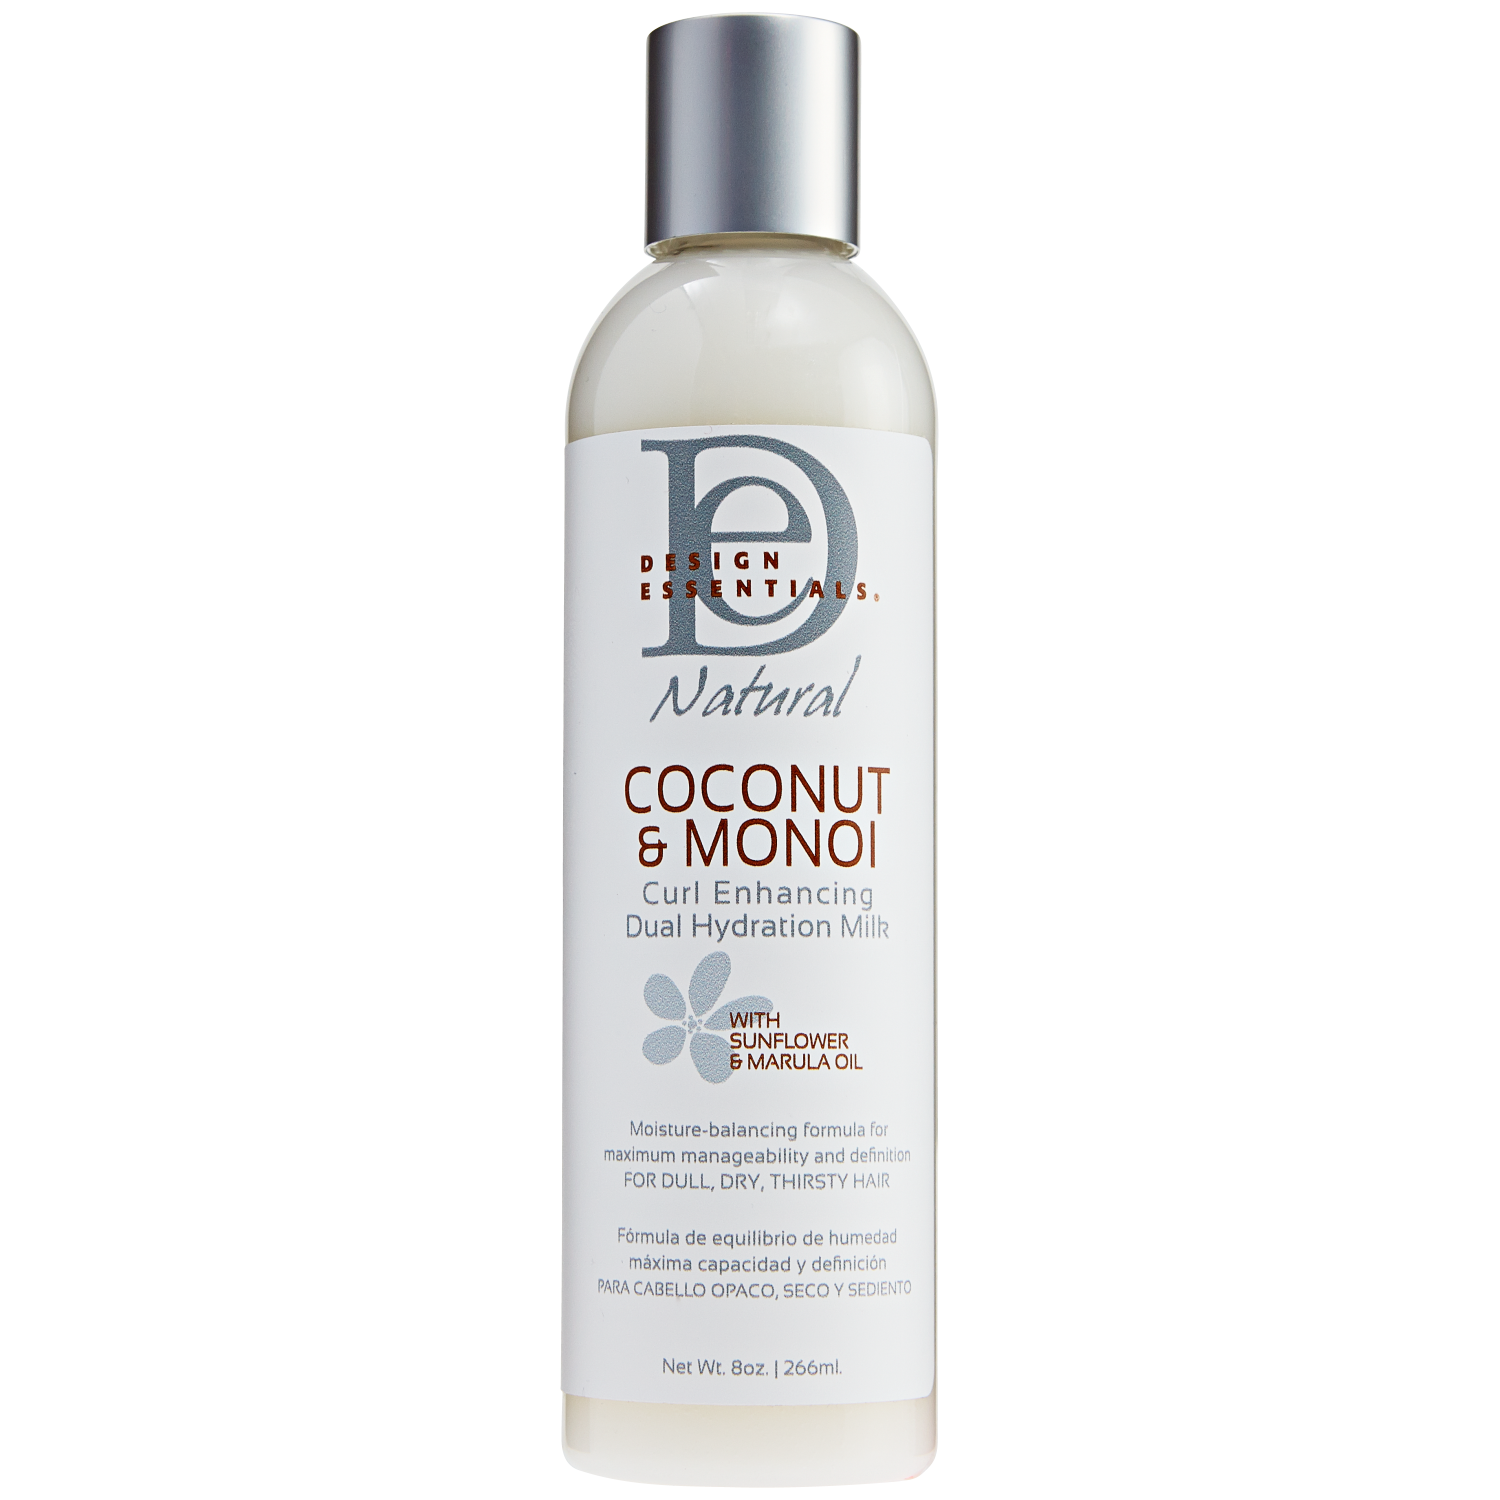 Design Essentials Natural Coconut and Monoi Curl Enhancing Dual Hydration Milk